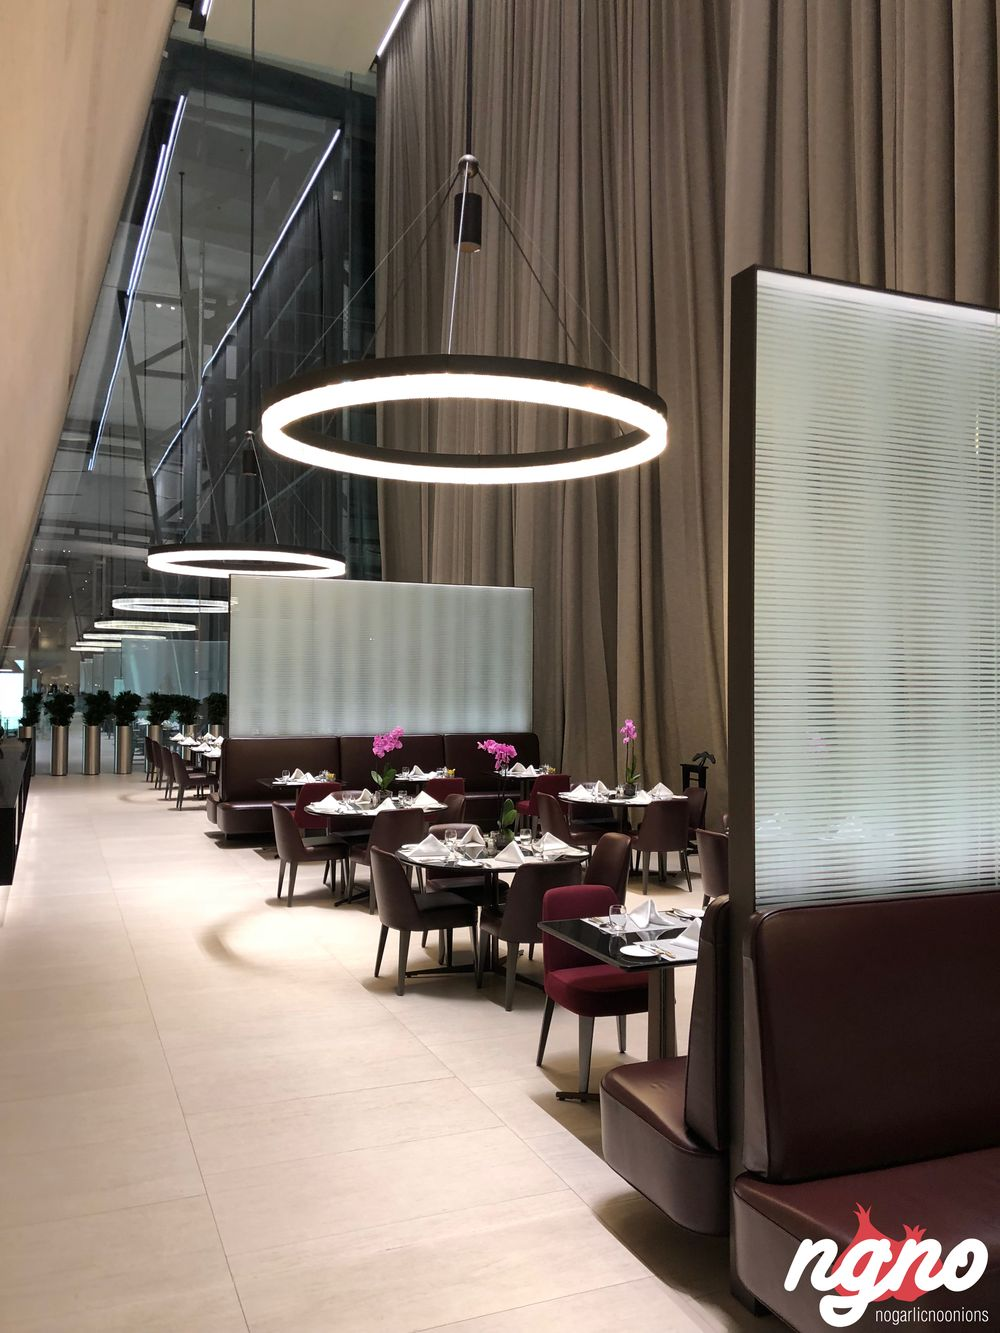 al-safwa-amazing-luxurious-first-class-lounge-qatar-doha-airport-742018-04-01-09-13-34